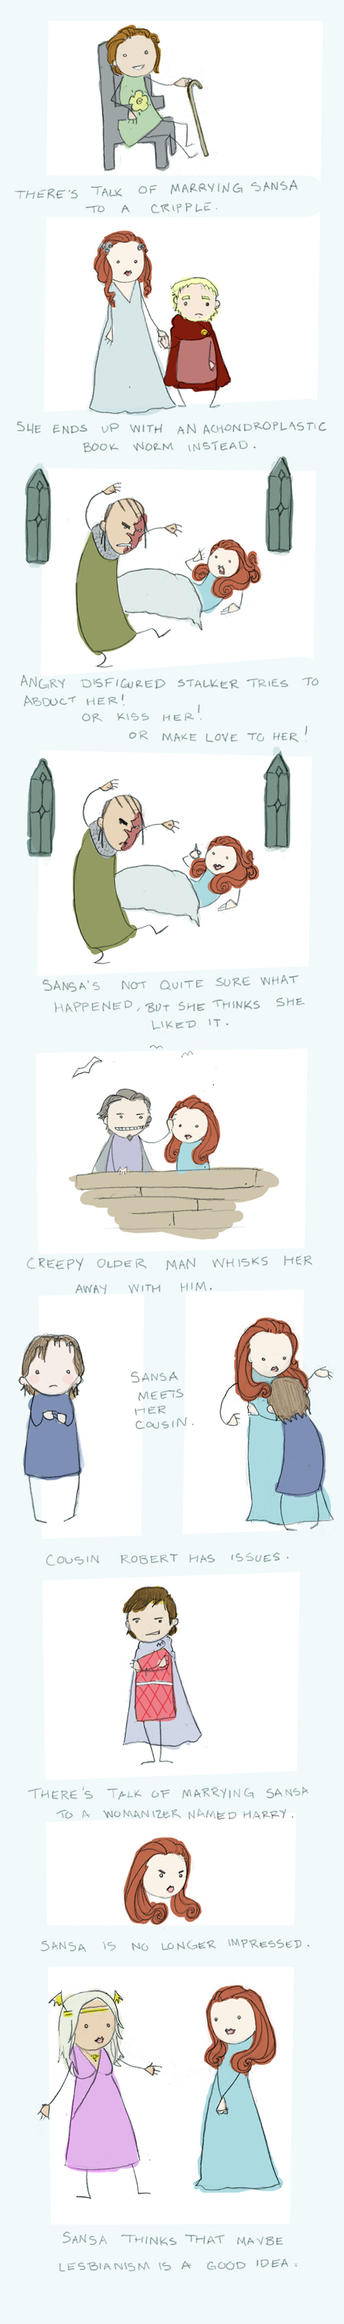 Sansa's Dating Woes: part two by alciha